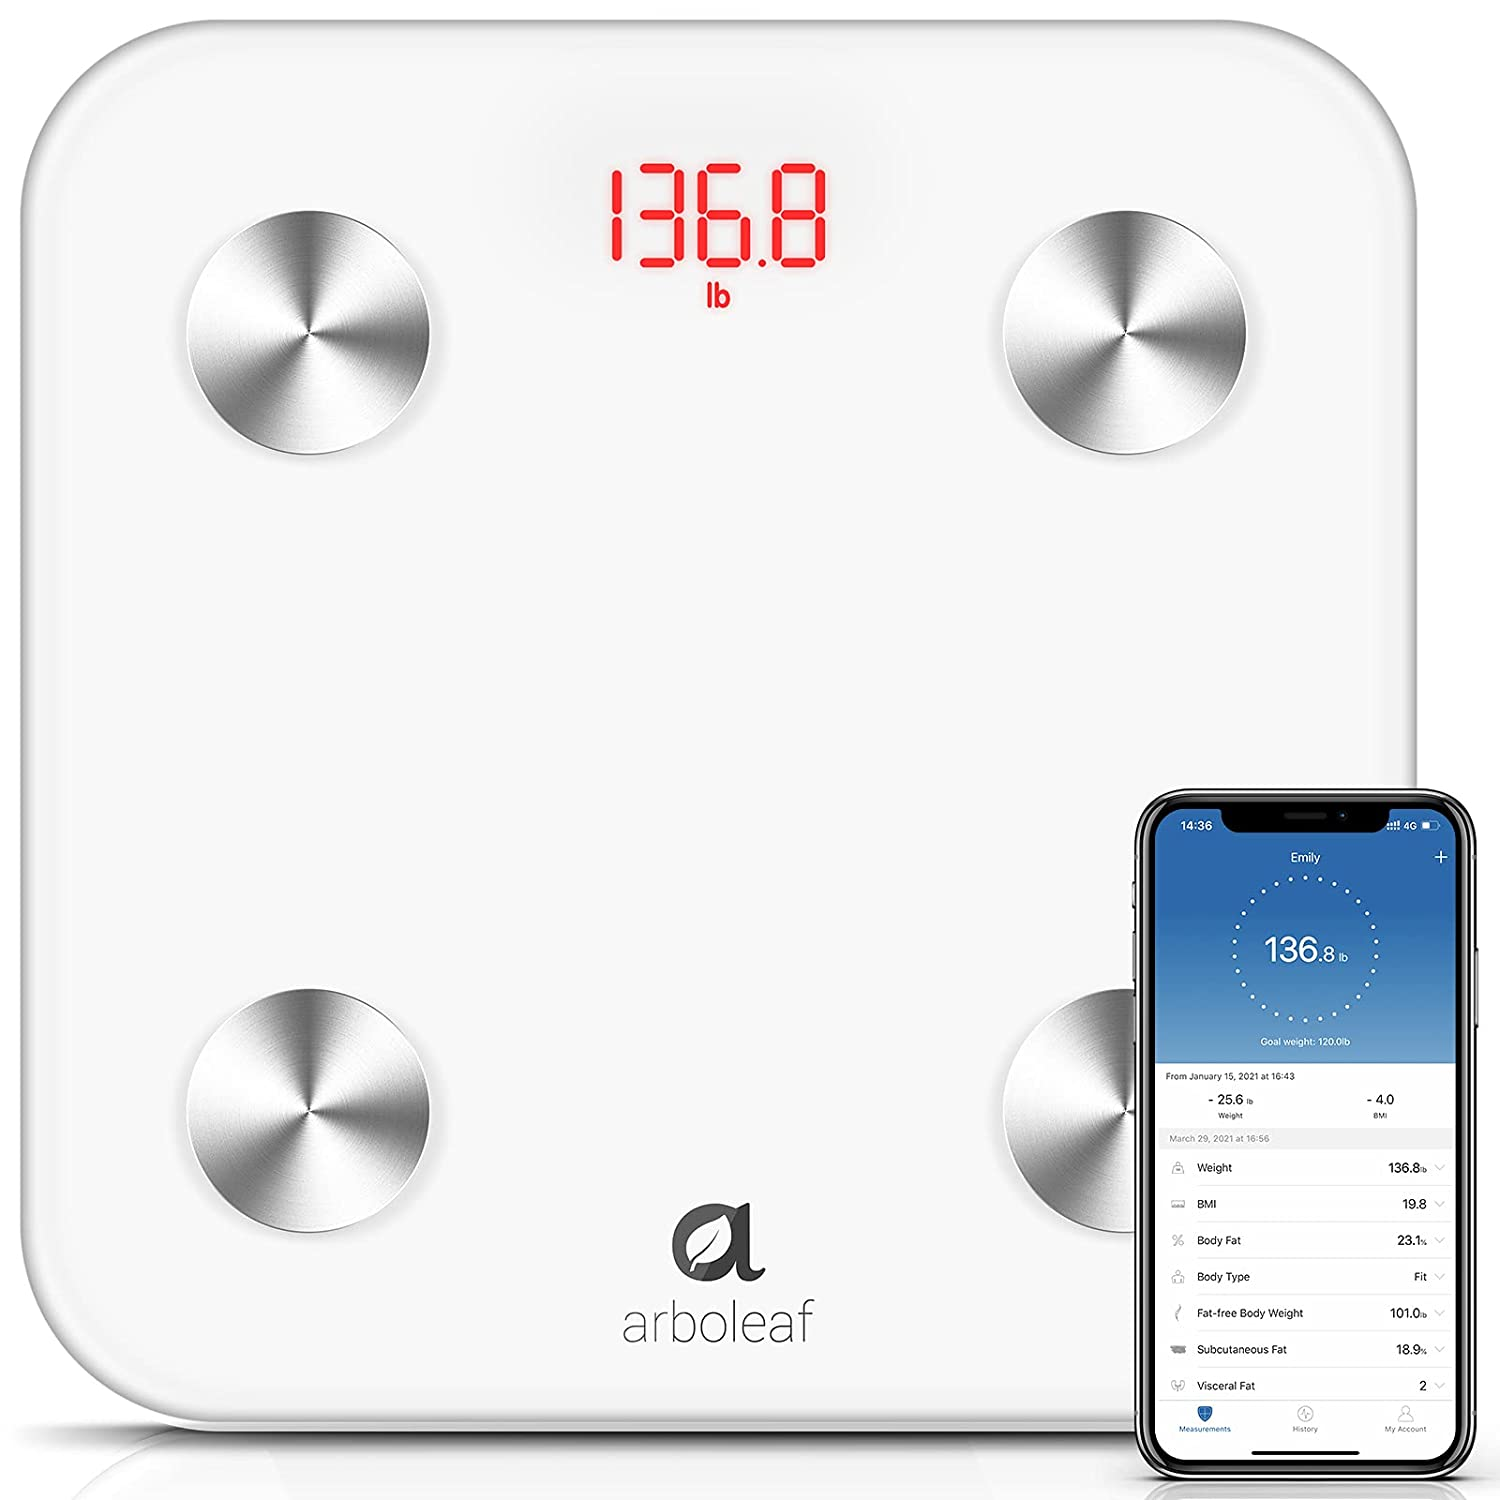 Arboleaf Body Fat Scale Digital Scale High Precision Bathroom Scale 14 Body Composition with Smartphone App Sync with WiFi and Bluetooth Weight Scale White Smart Scale